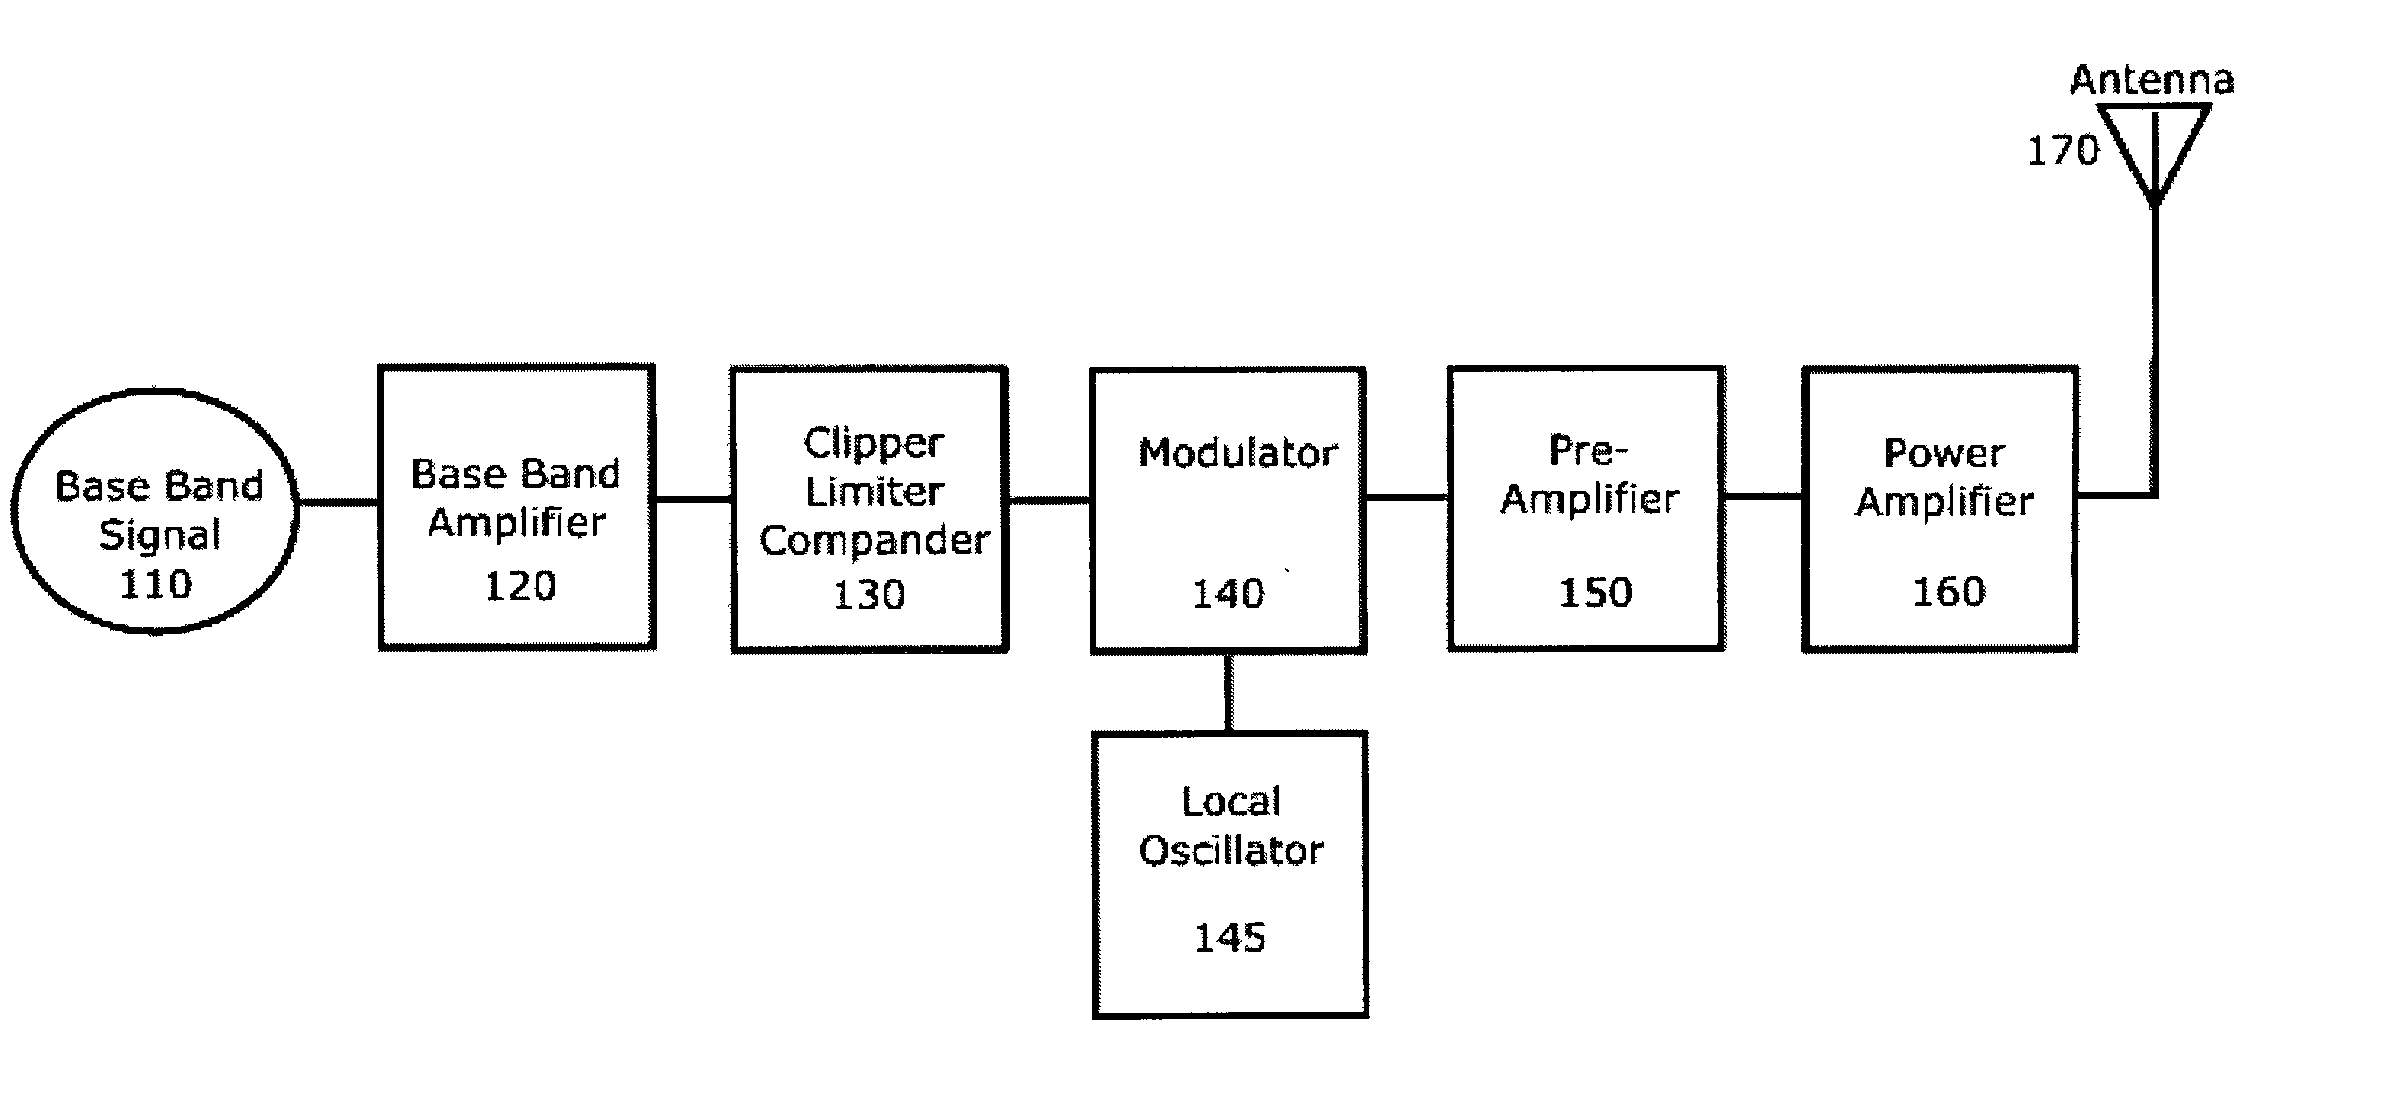 Fm microwave radio transmitter block diagram wiring diagram patent us20030095201 system and method for superheterodyne figure 2 v60txwg2 transmitter block diagram a and v60rxwg2 receiver pooptronica